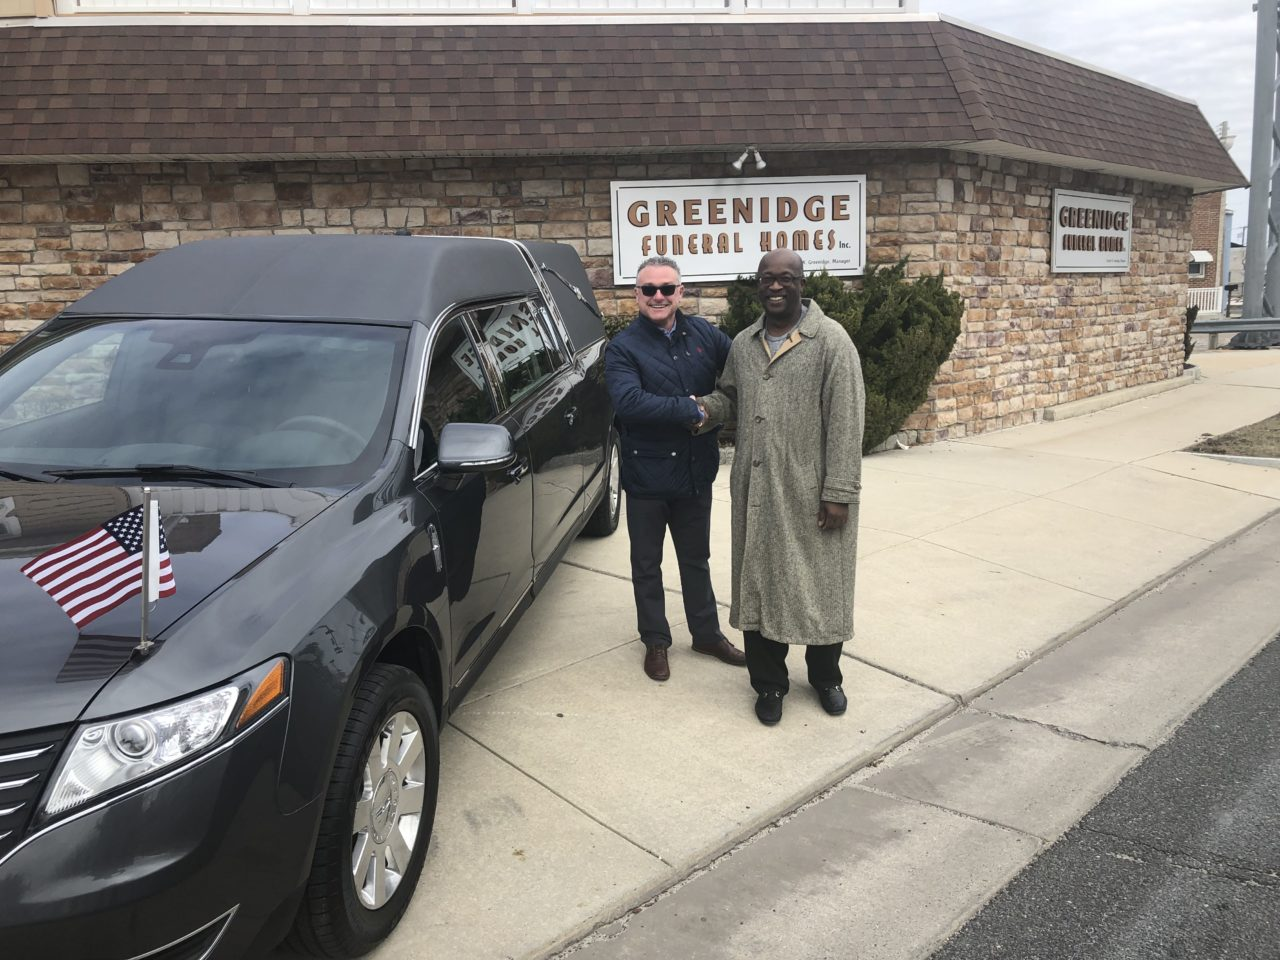 New Delivery: 2019 Federal Heritage Funeral Coach delivered to Greenidge Funeral Homes